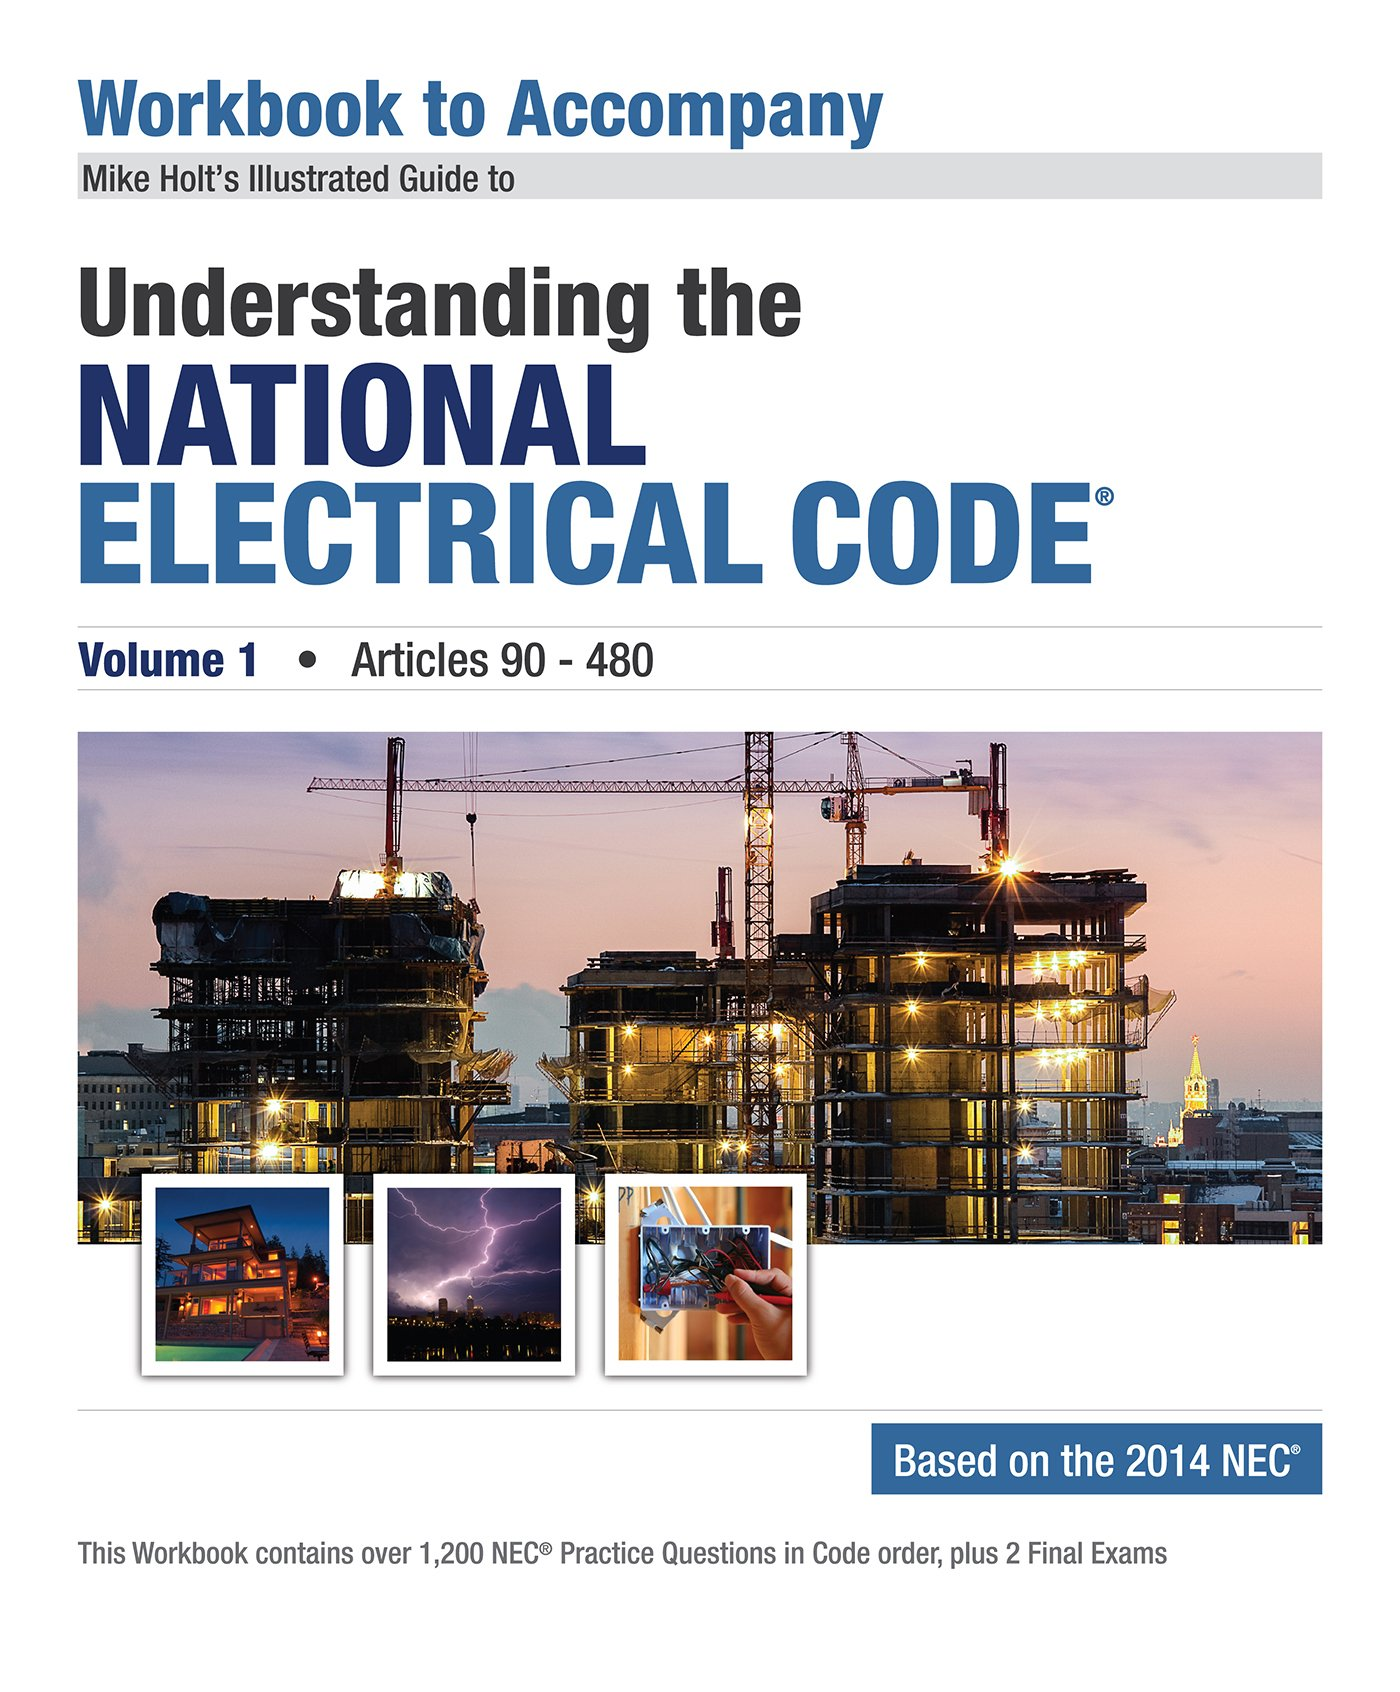 Mike Holt's Workbook to Accompany Understanding the NEC Volume 1, Based on  the 2014 NEC: Mike Holt: 9781932685756: Amazon.com: Books